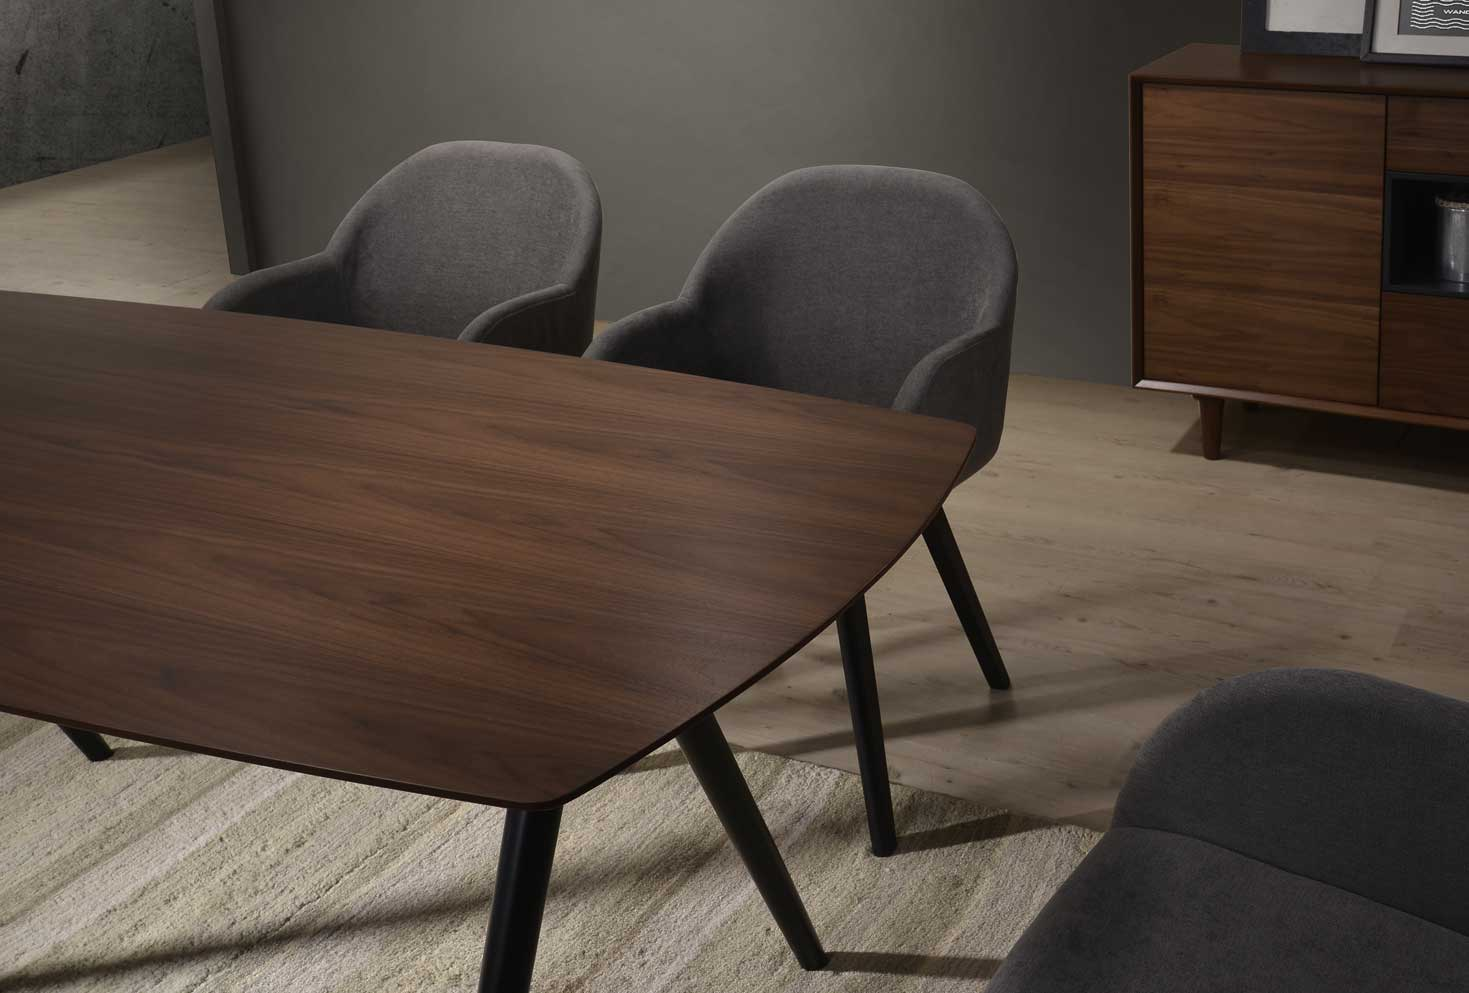 rubberwood Manufacturer in    Malaysia by NRT-Cascadia Home